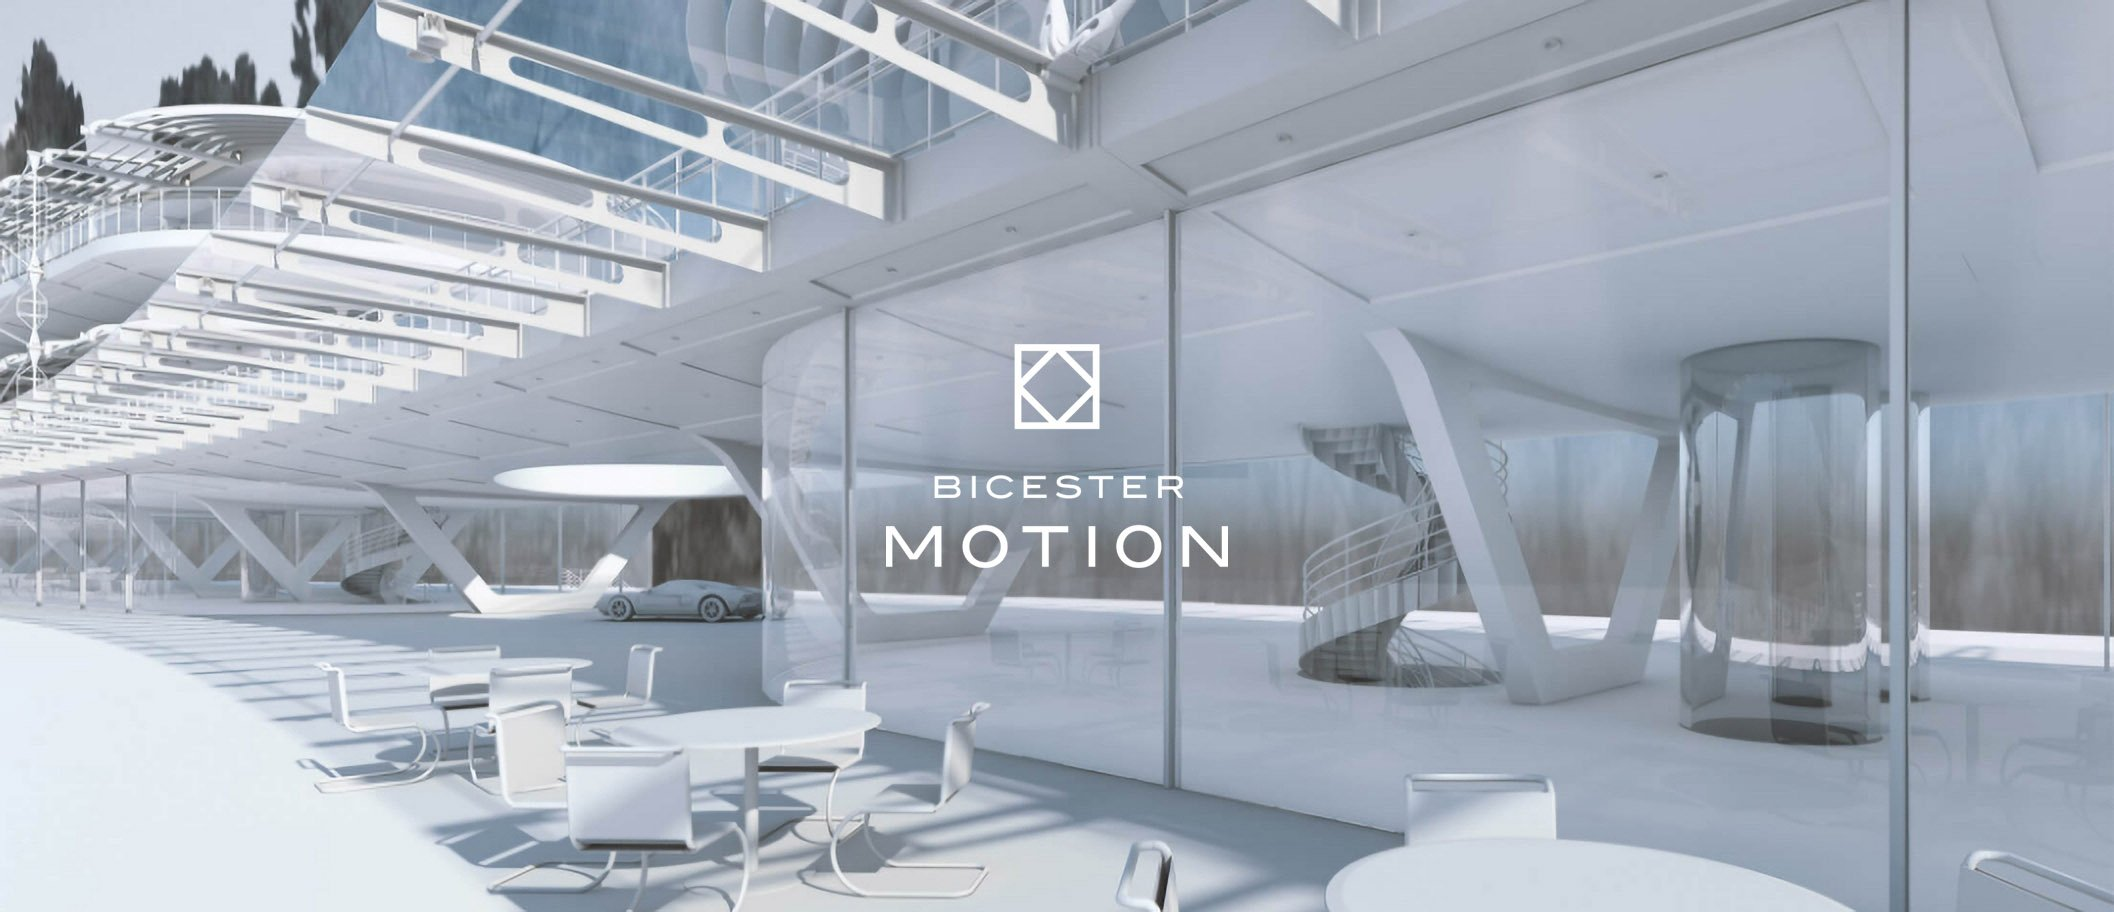 Bicester Motion logo on architectural 3D visual